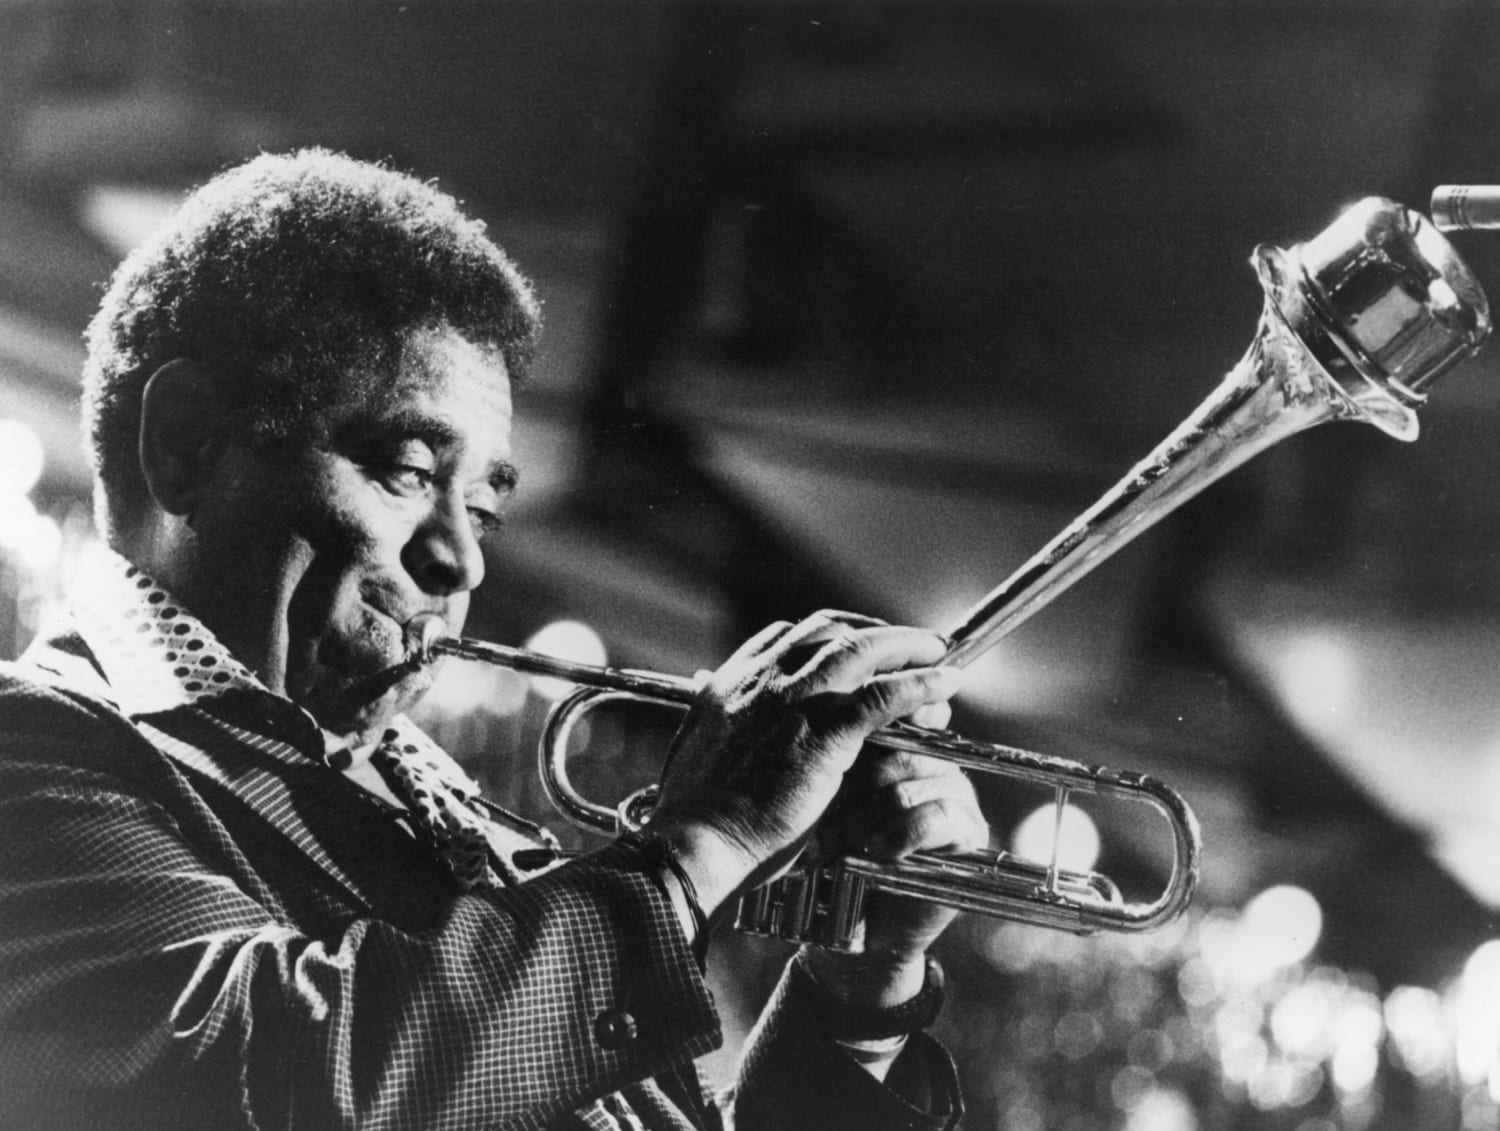 circa 1956: Dizzy Gillespie (1917 - 1993) the professional name of John Birks, the jazz trumpeter, composer and bandleader as he performs at the International Jazz Festival at Montreux. (Photo by Keystone/Getty Images)